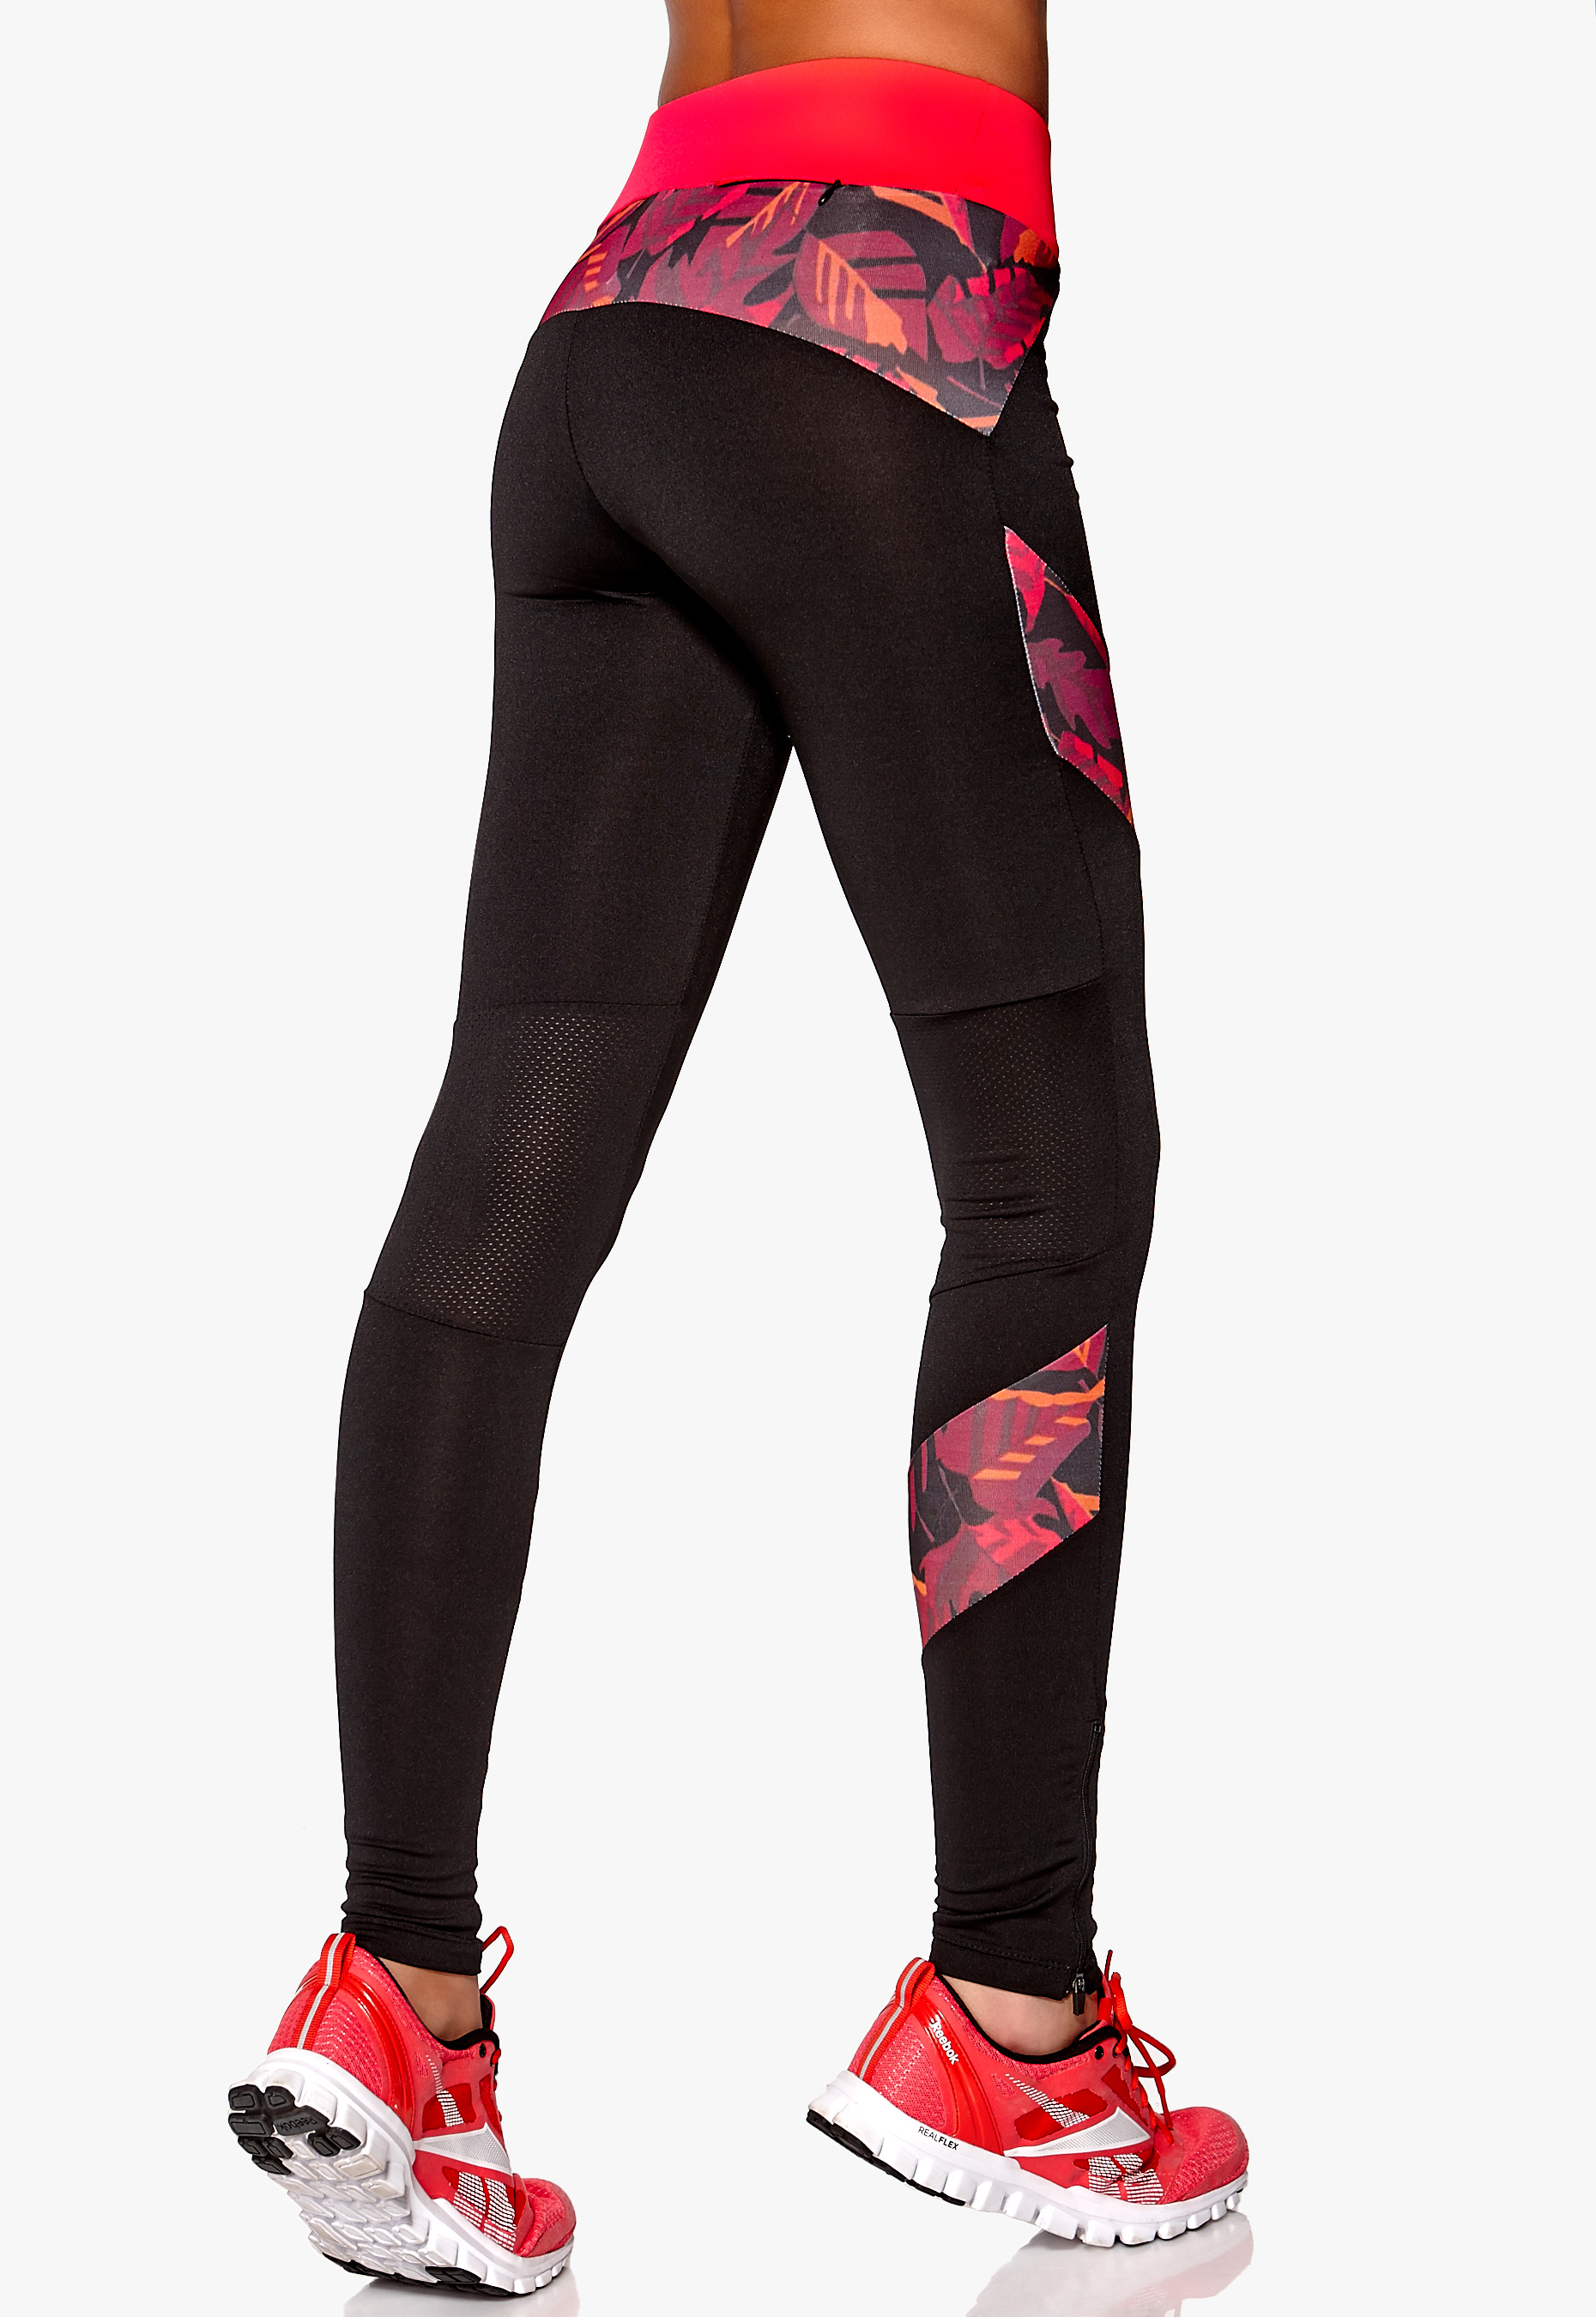 how to choose running tights size